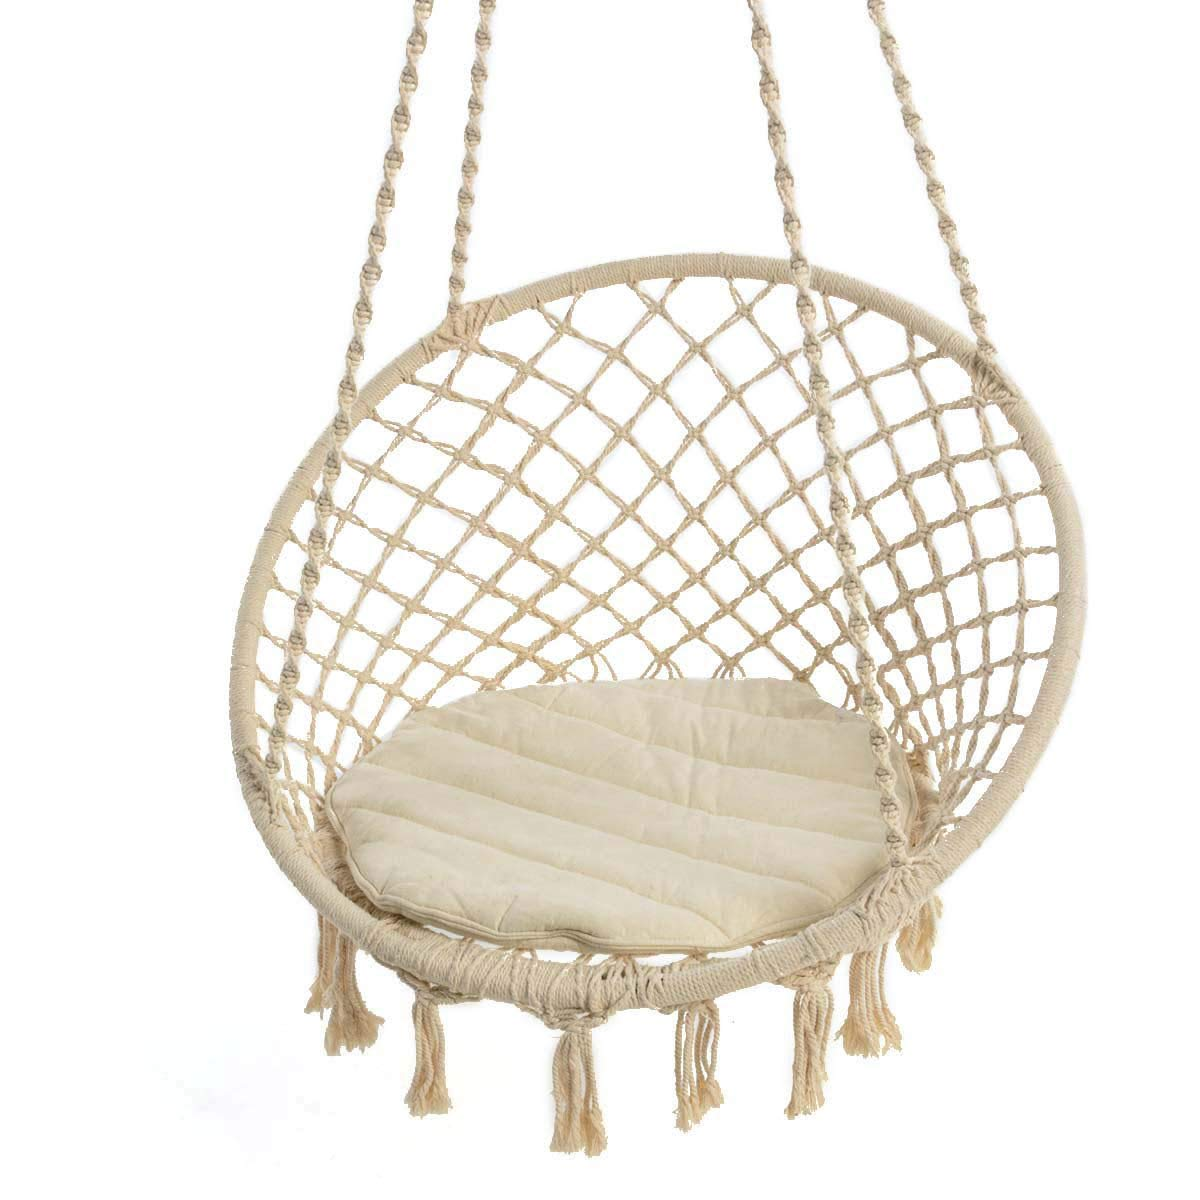 PureDay Cream coloured hanging chair with round quilted cotton seat cover height 125 cm x diameter  sc 1 st  Amazon UK & Ceiling Chairs: Amazon.co.uk